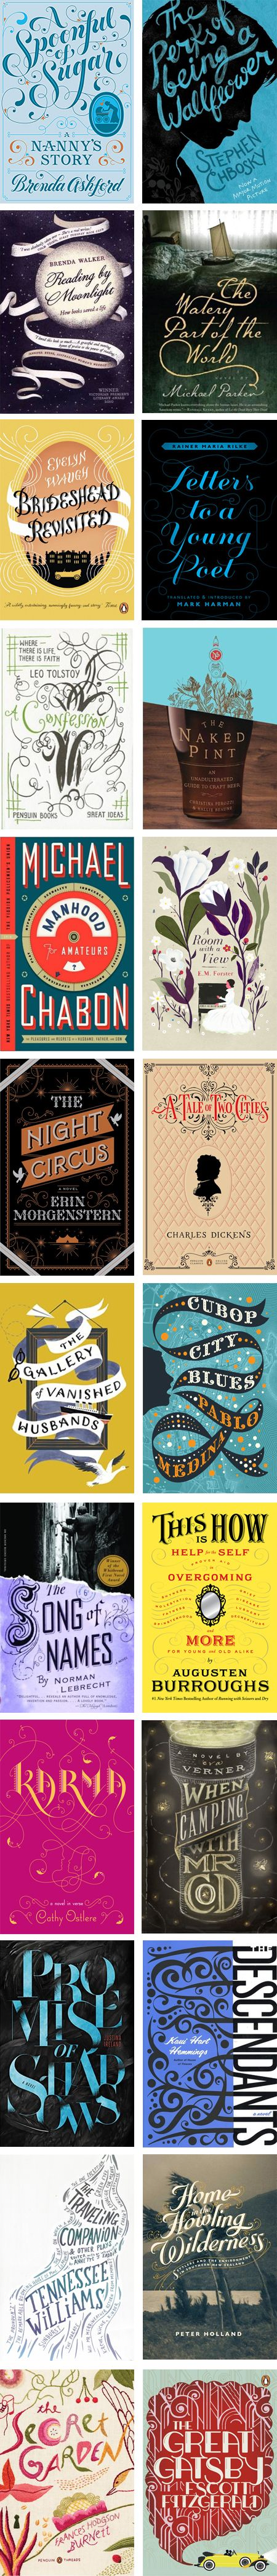 Great book cover designs (typographic)